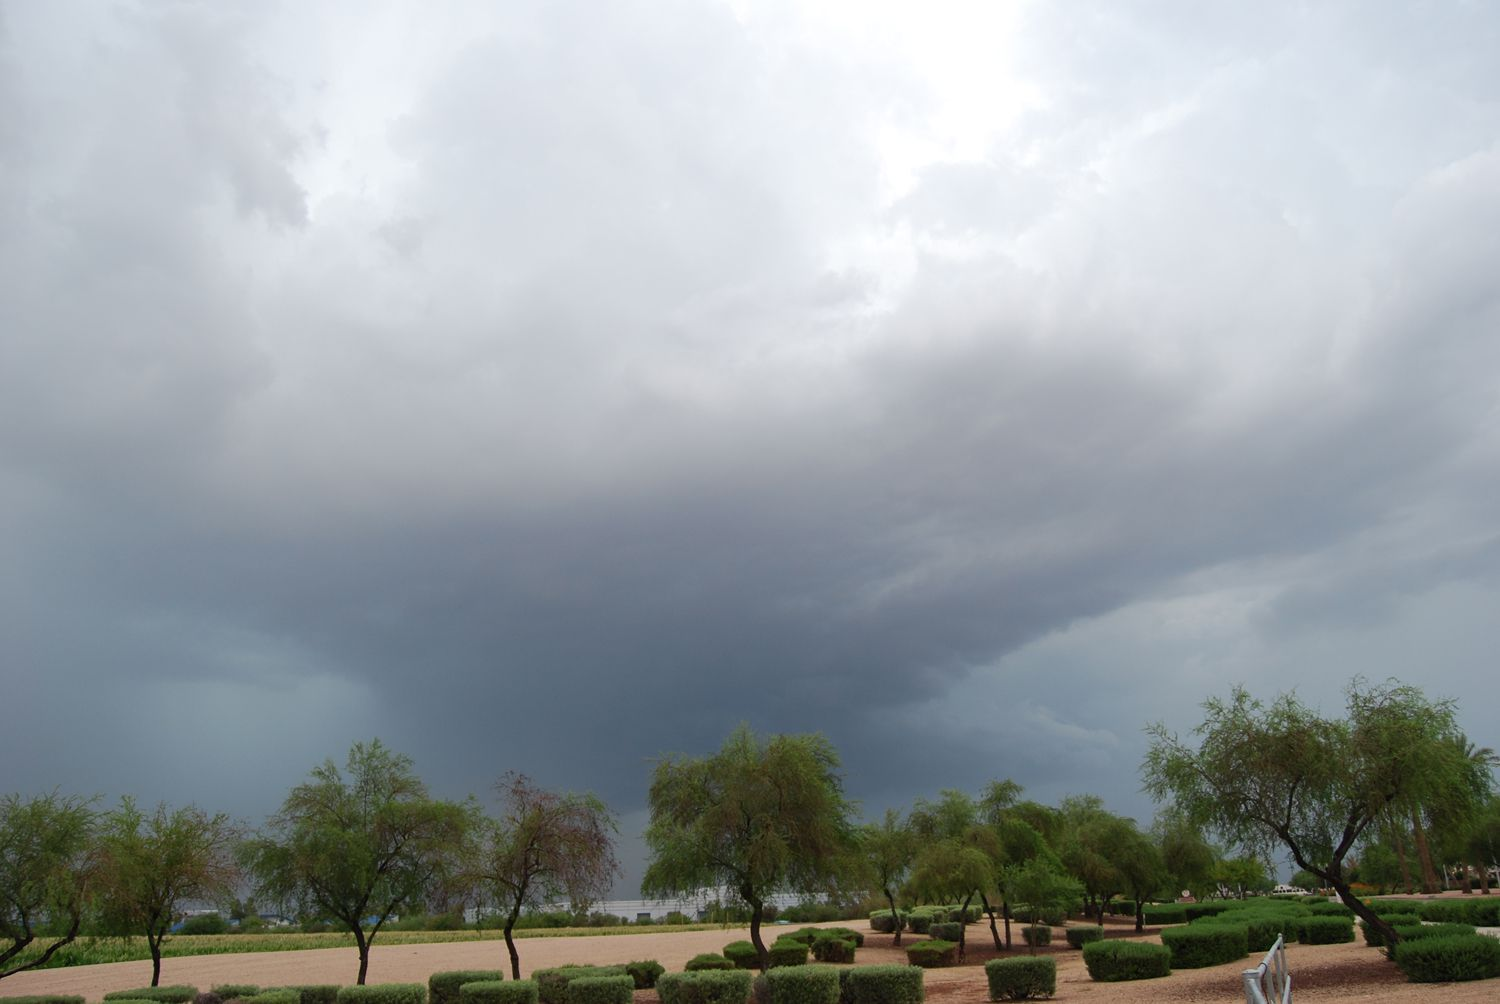 Formation of a Microburst in Phoenix